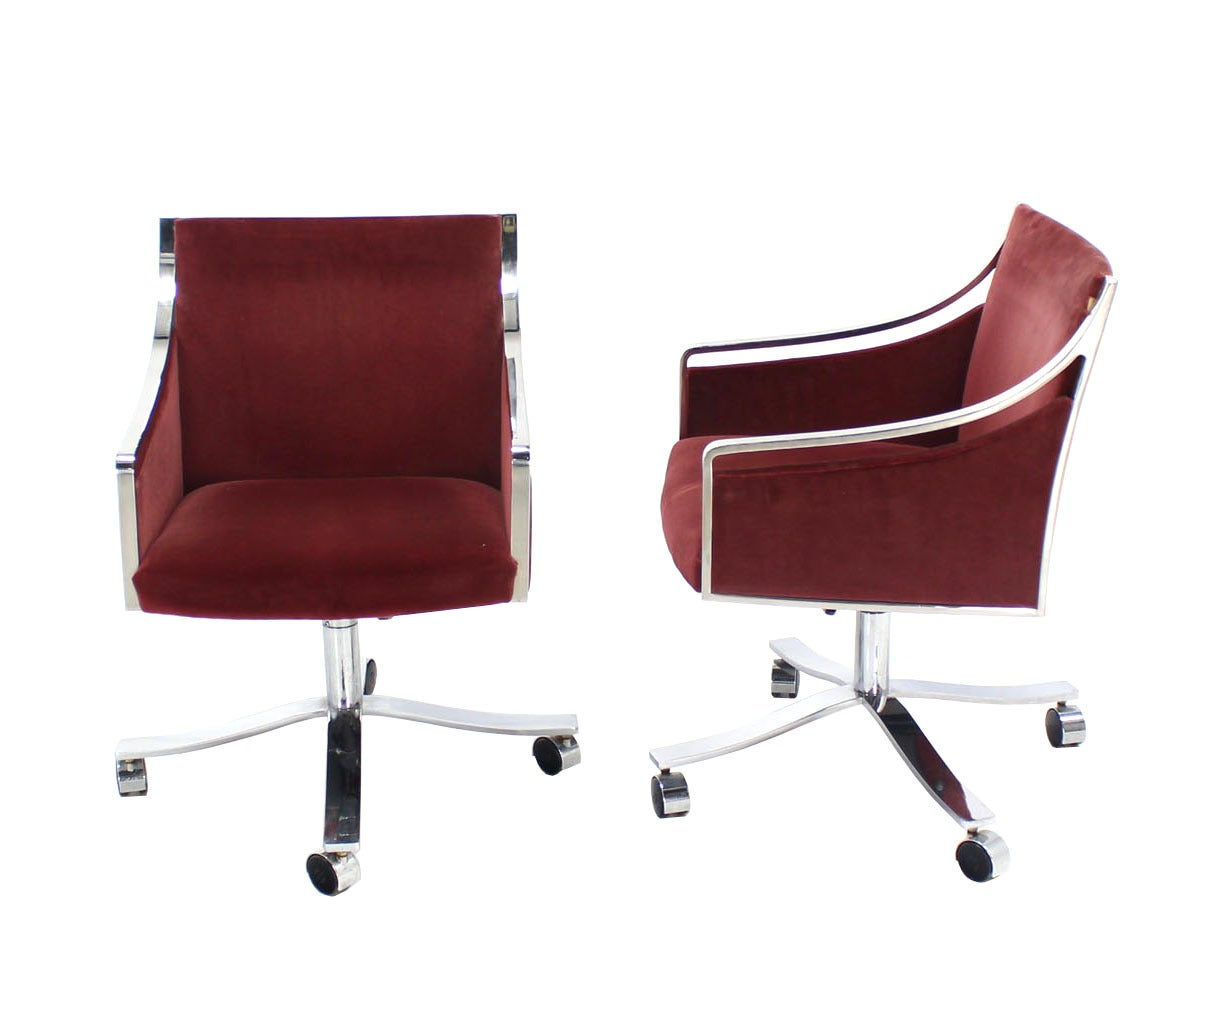 Set Of Four Stow Davis Borsani Office Chairs On Heavy Stainless Steel X Bases For Sale At 1stdibs